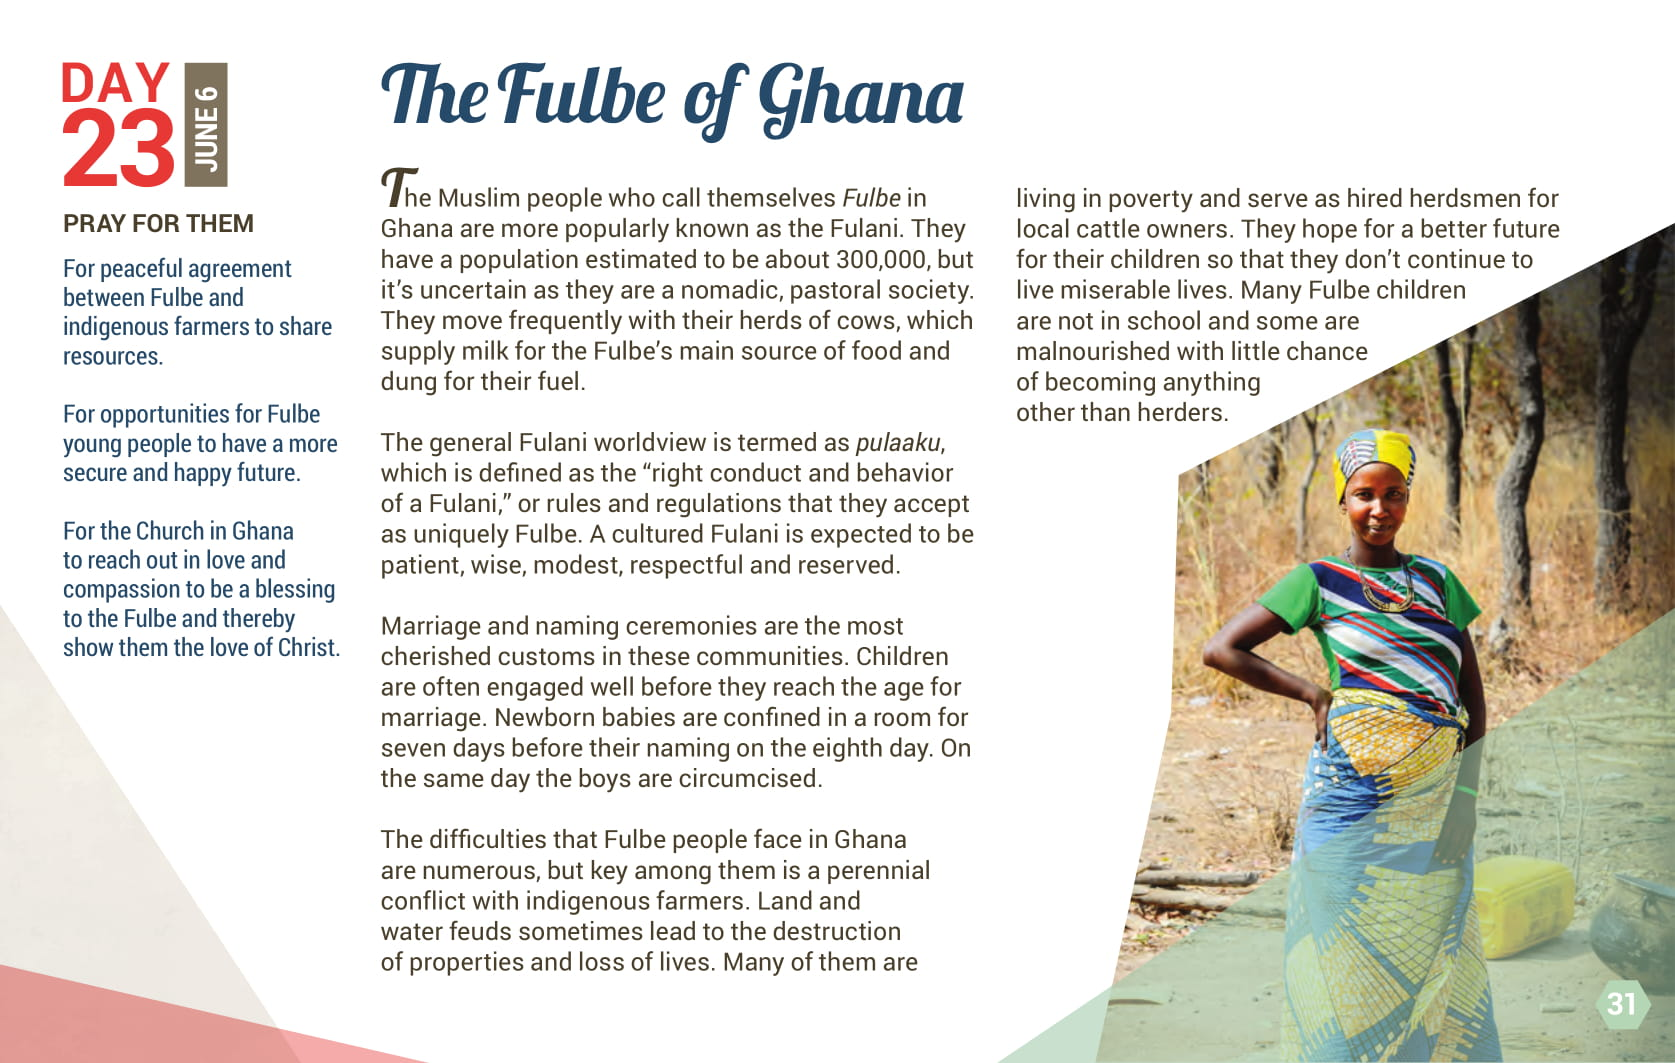 Day 23 - The Fulbe of Ghana